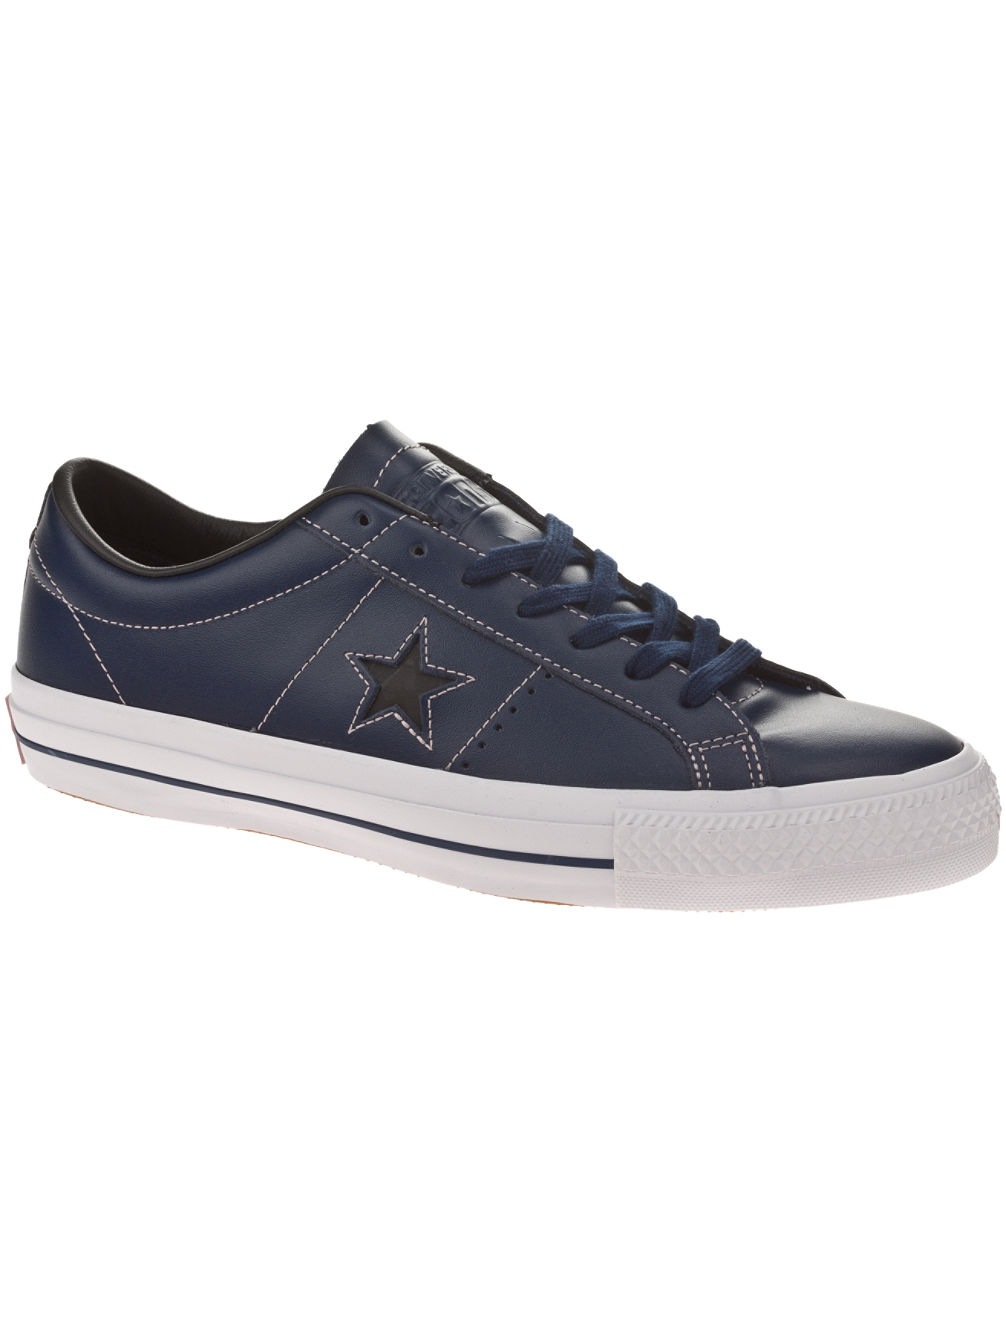 Converse Cons One Star Skate Ox Shoes - converse - blue-tomato.com